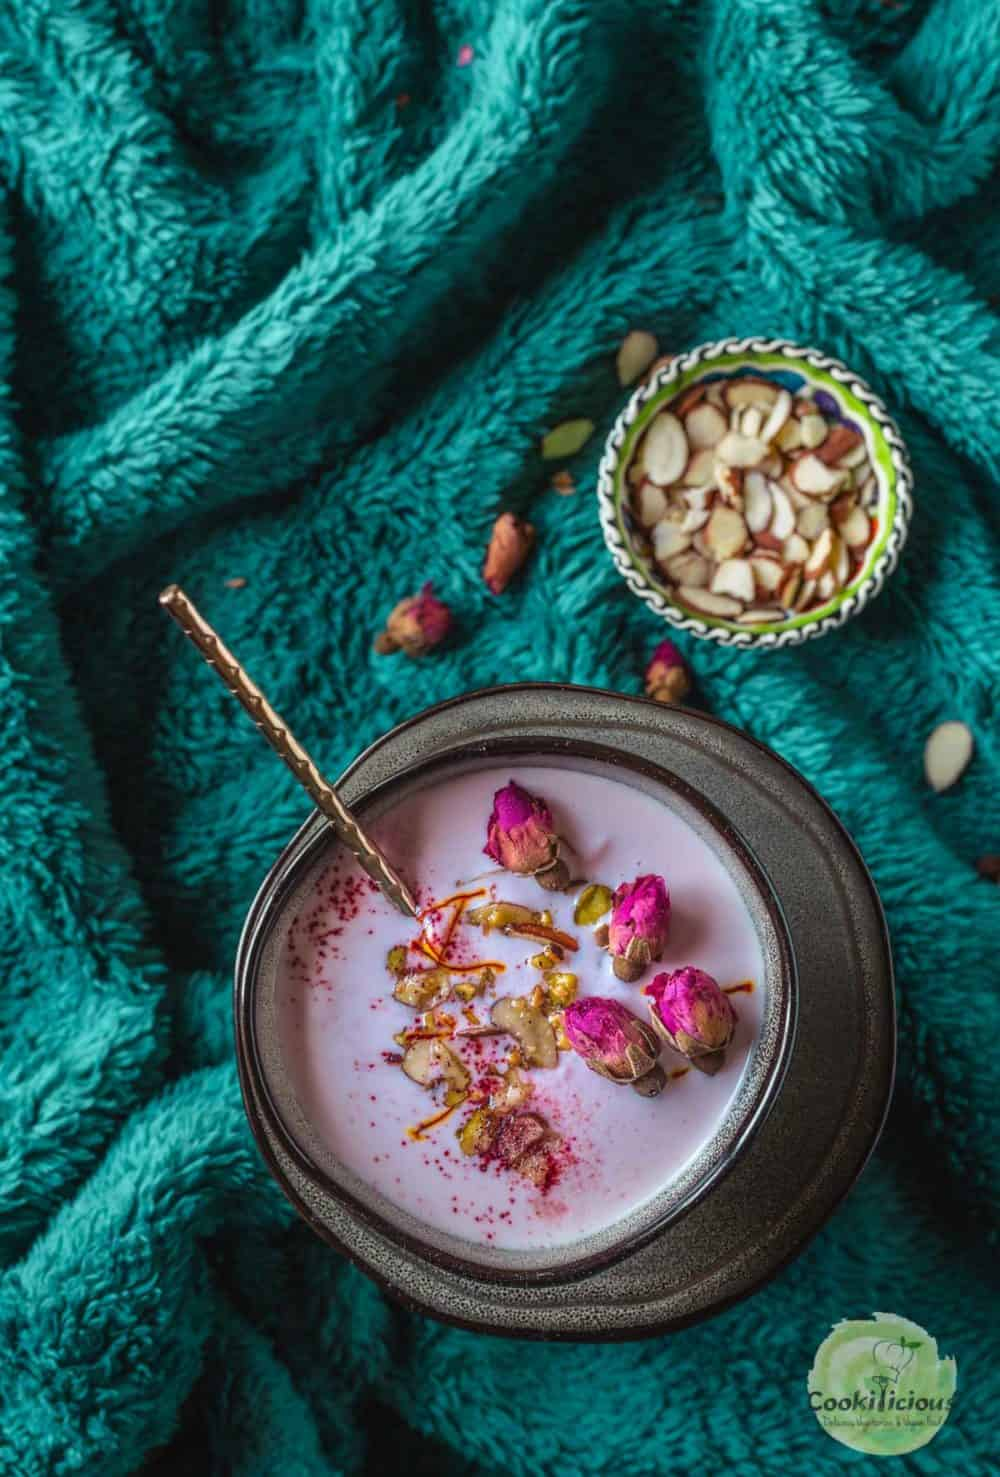 a bowl of Vegan Rose Basundi with a spoon in it